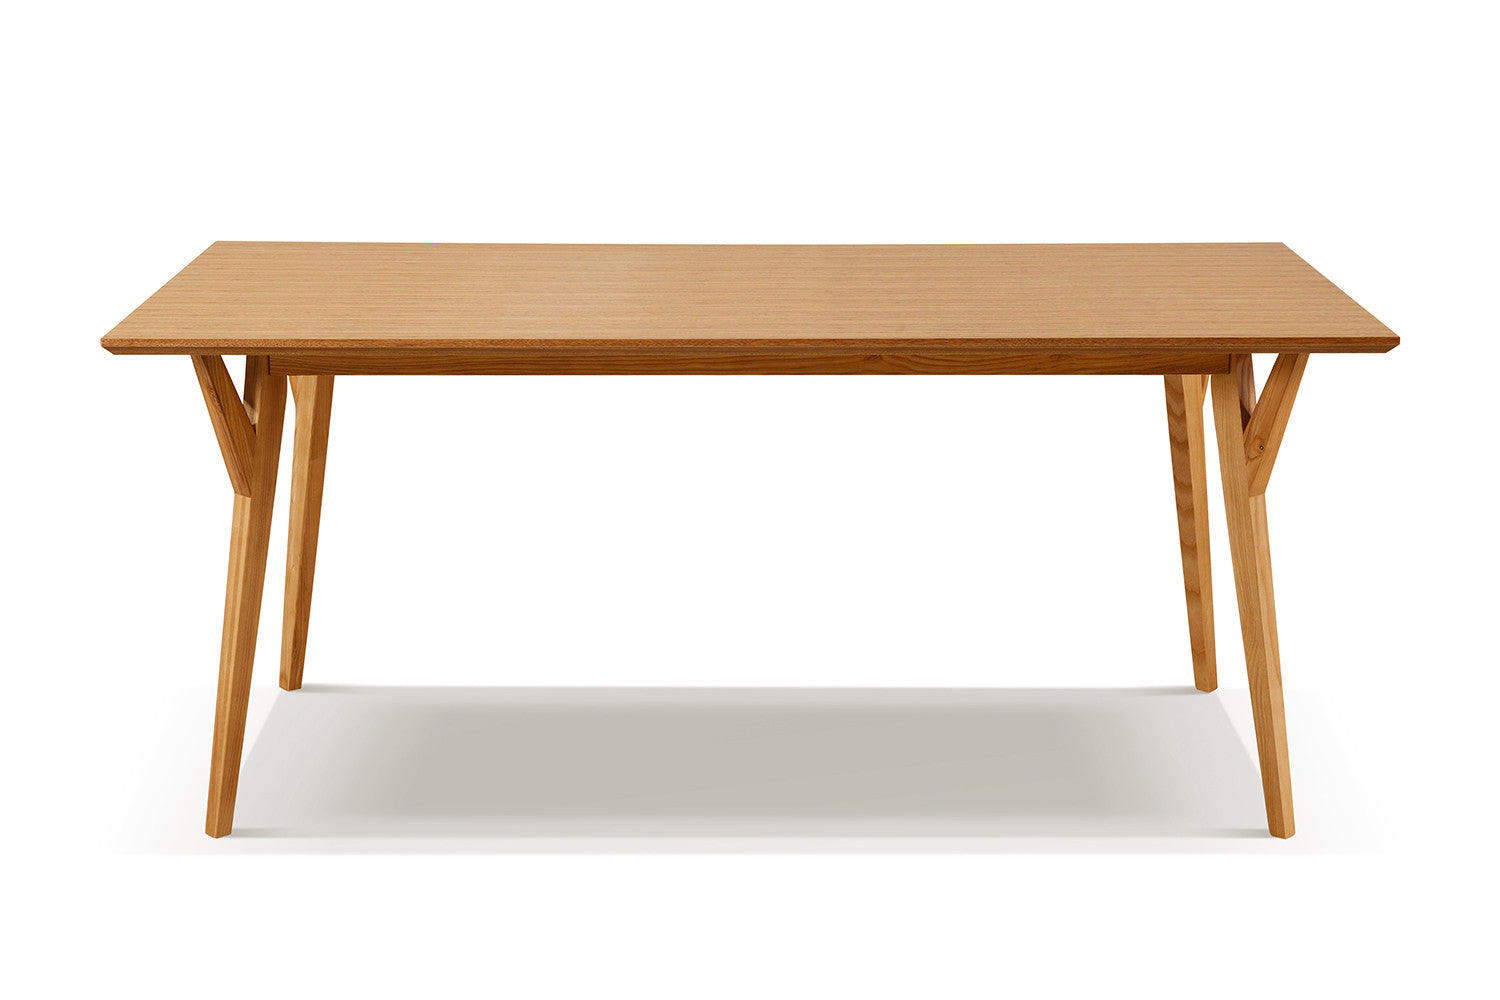 Table de salle manger scandinave en bois linth dewarens - Table a manger scandinave ...